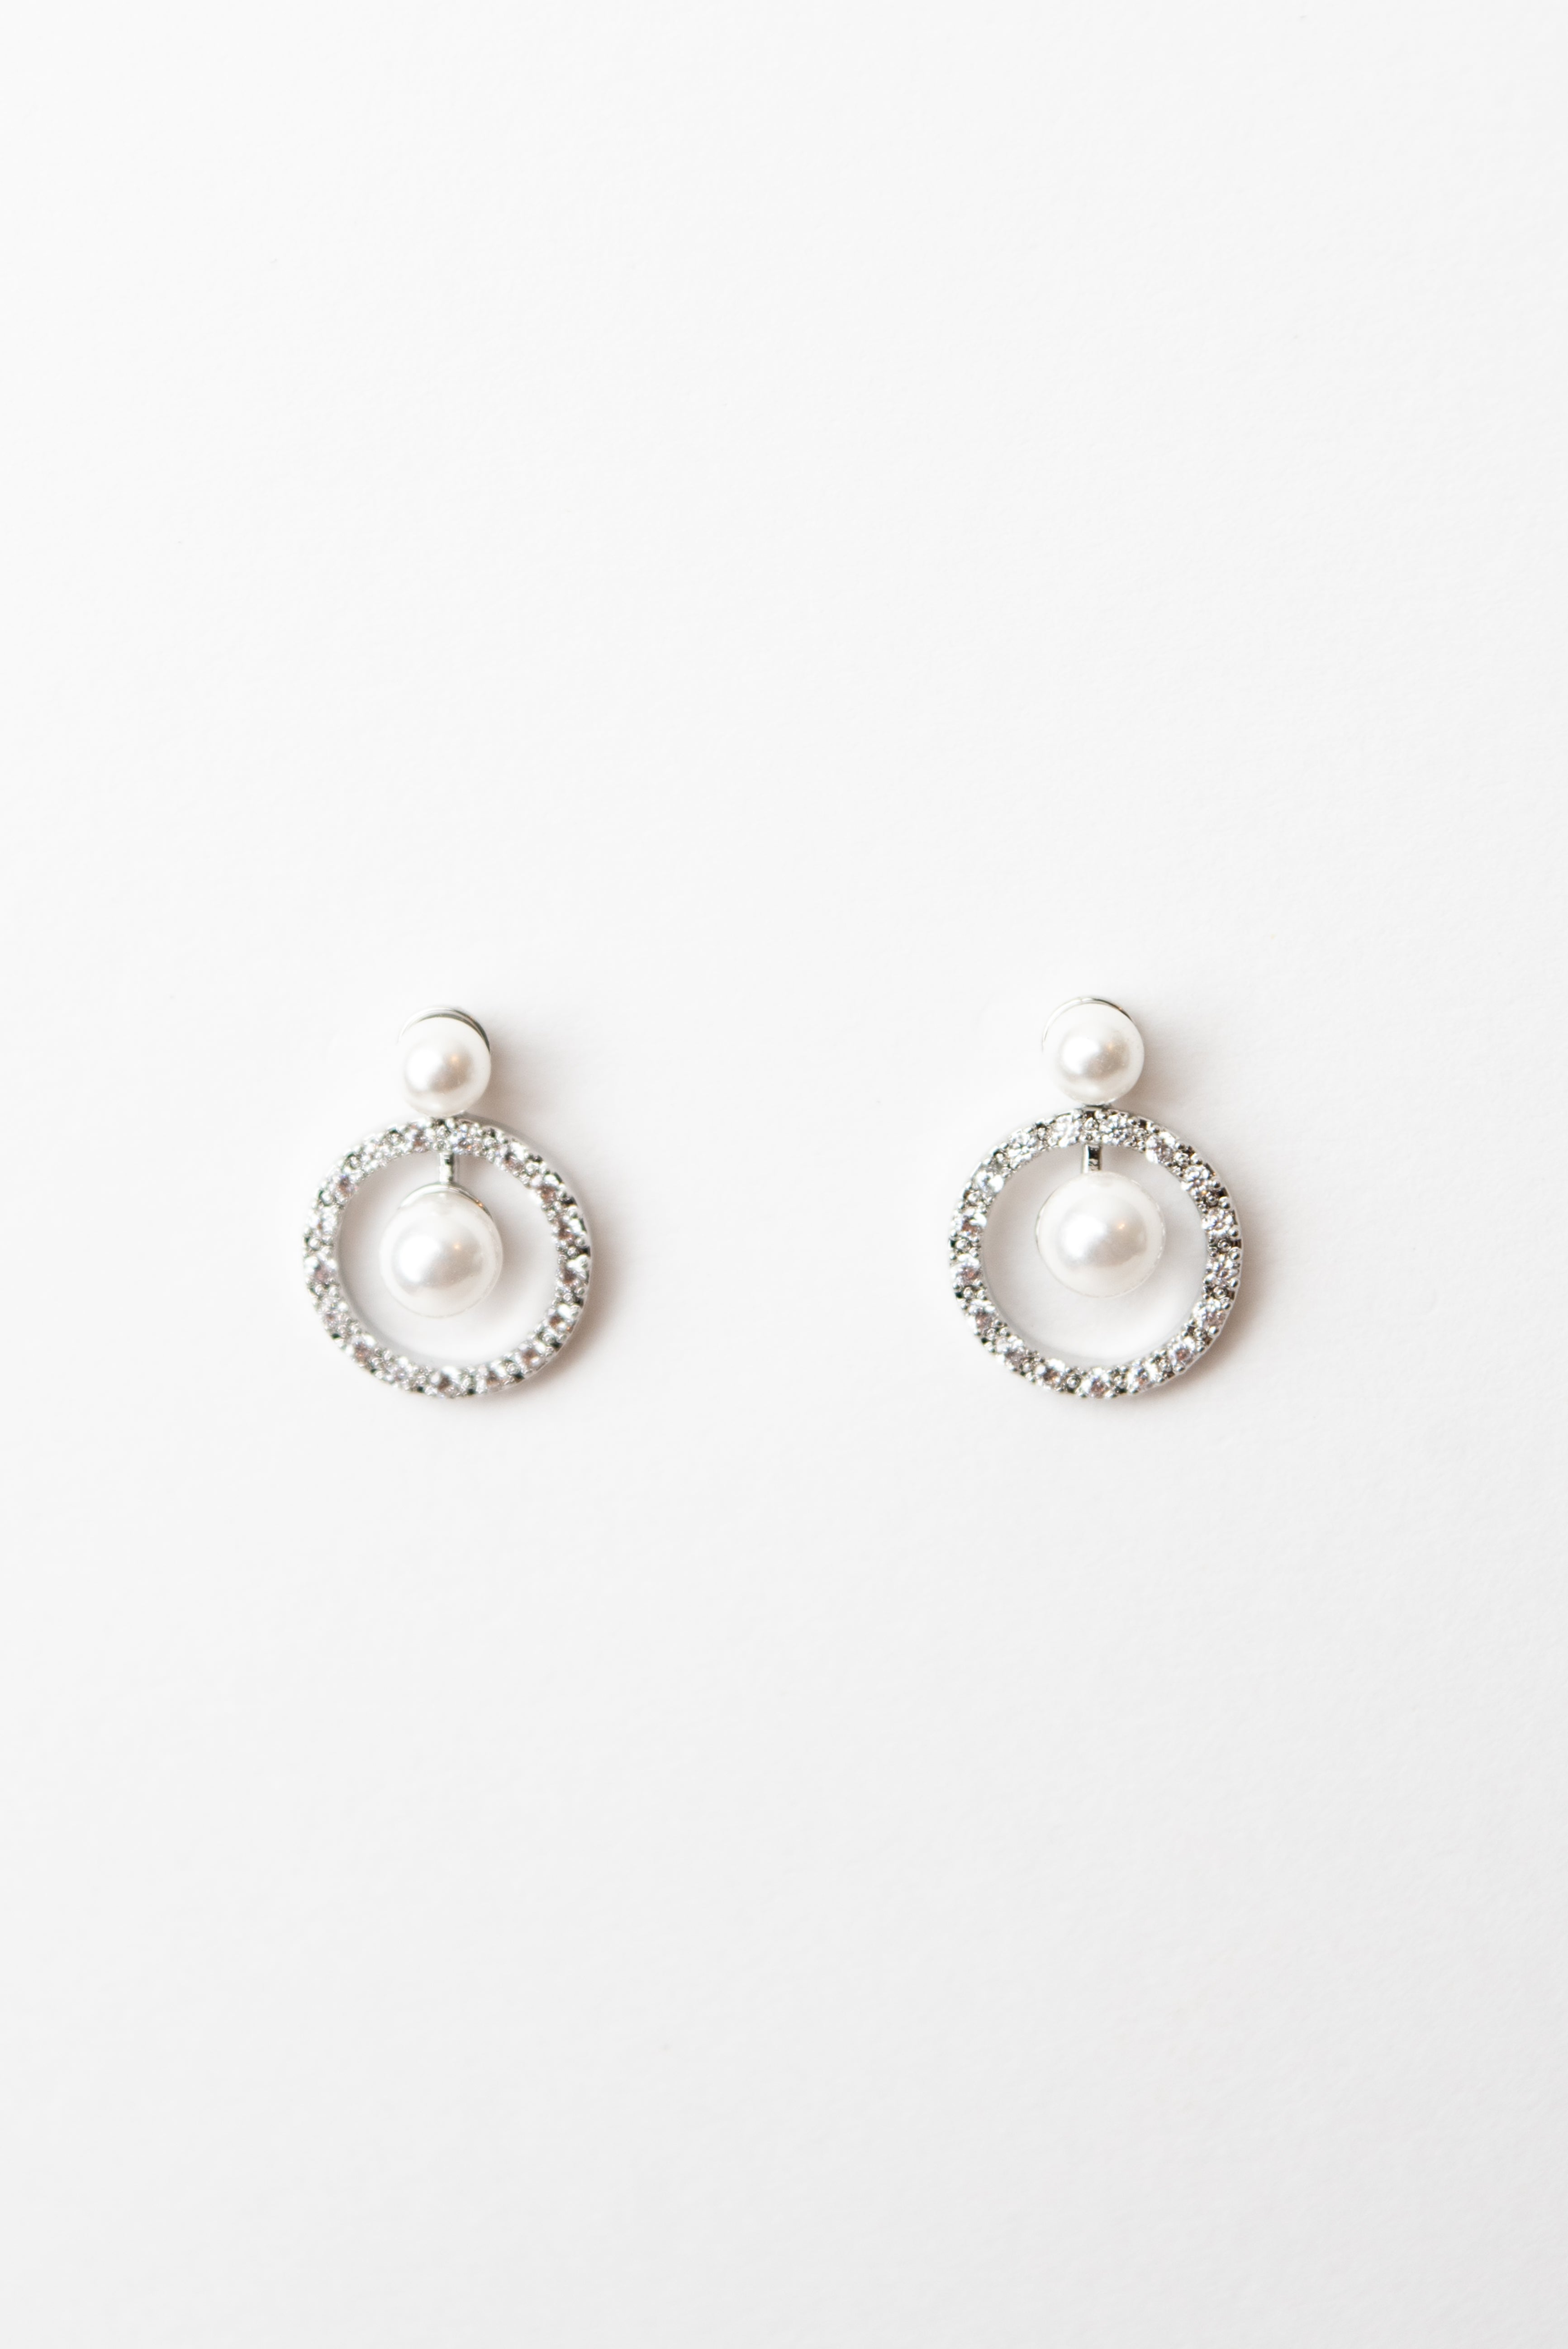 Beck & Boosh Cherish Studs Pearl Stud Earrings with Circle of Rhinestones that Hang Beneath and another Pearl in Middle of Rhinestone Circle